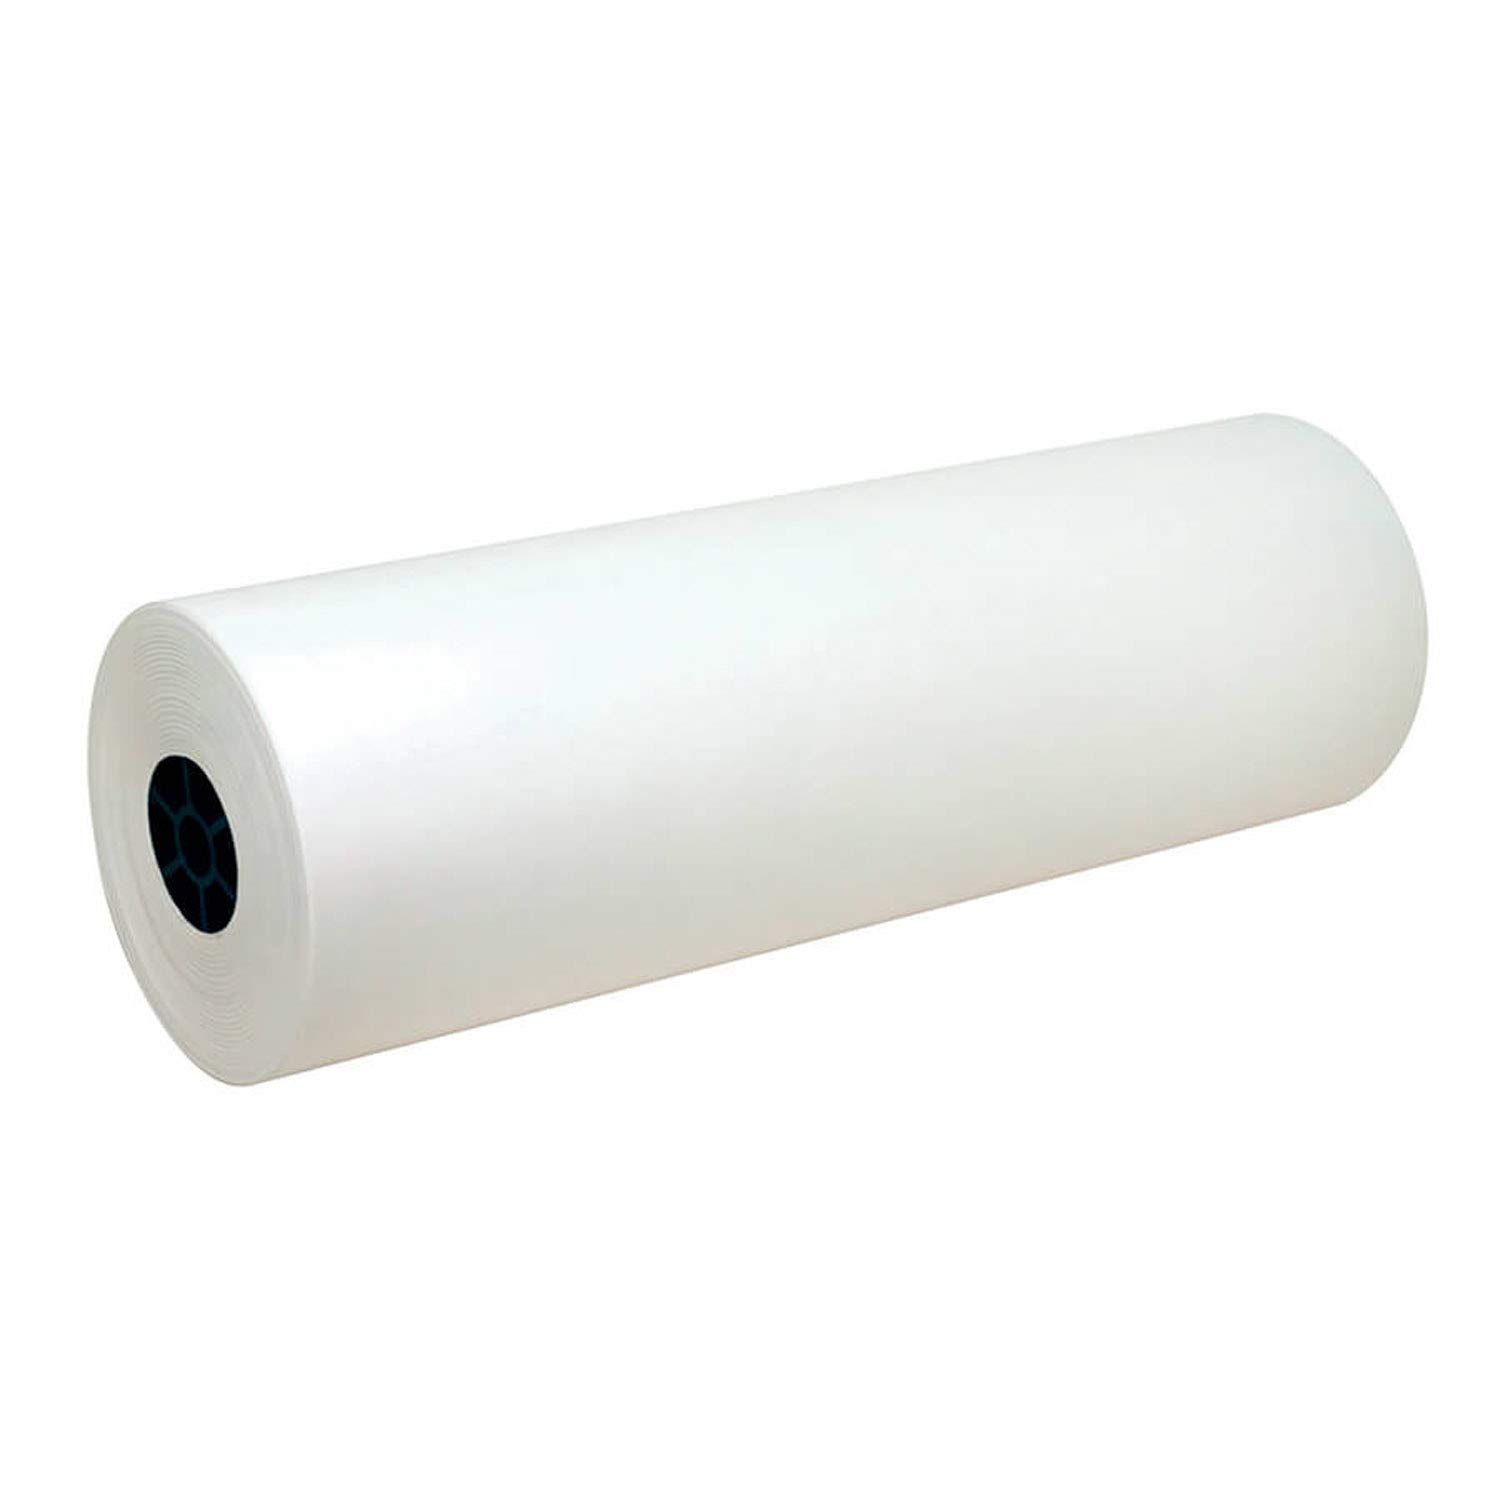 Pacon PAC5624 Lightweight Kraft Roll, White, 24'' x 1000', 1 Roll by PACON